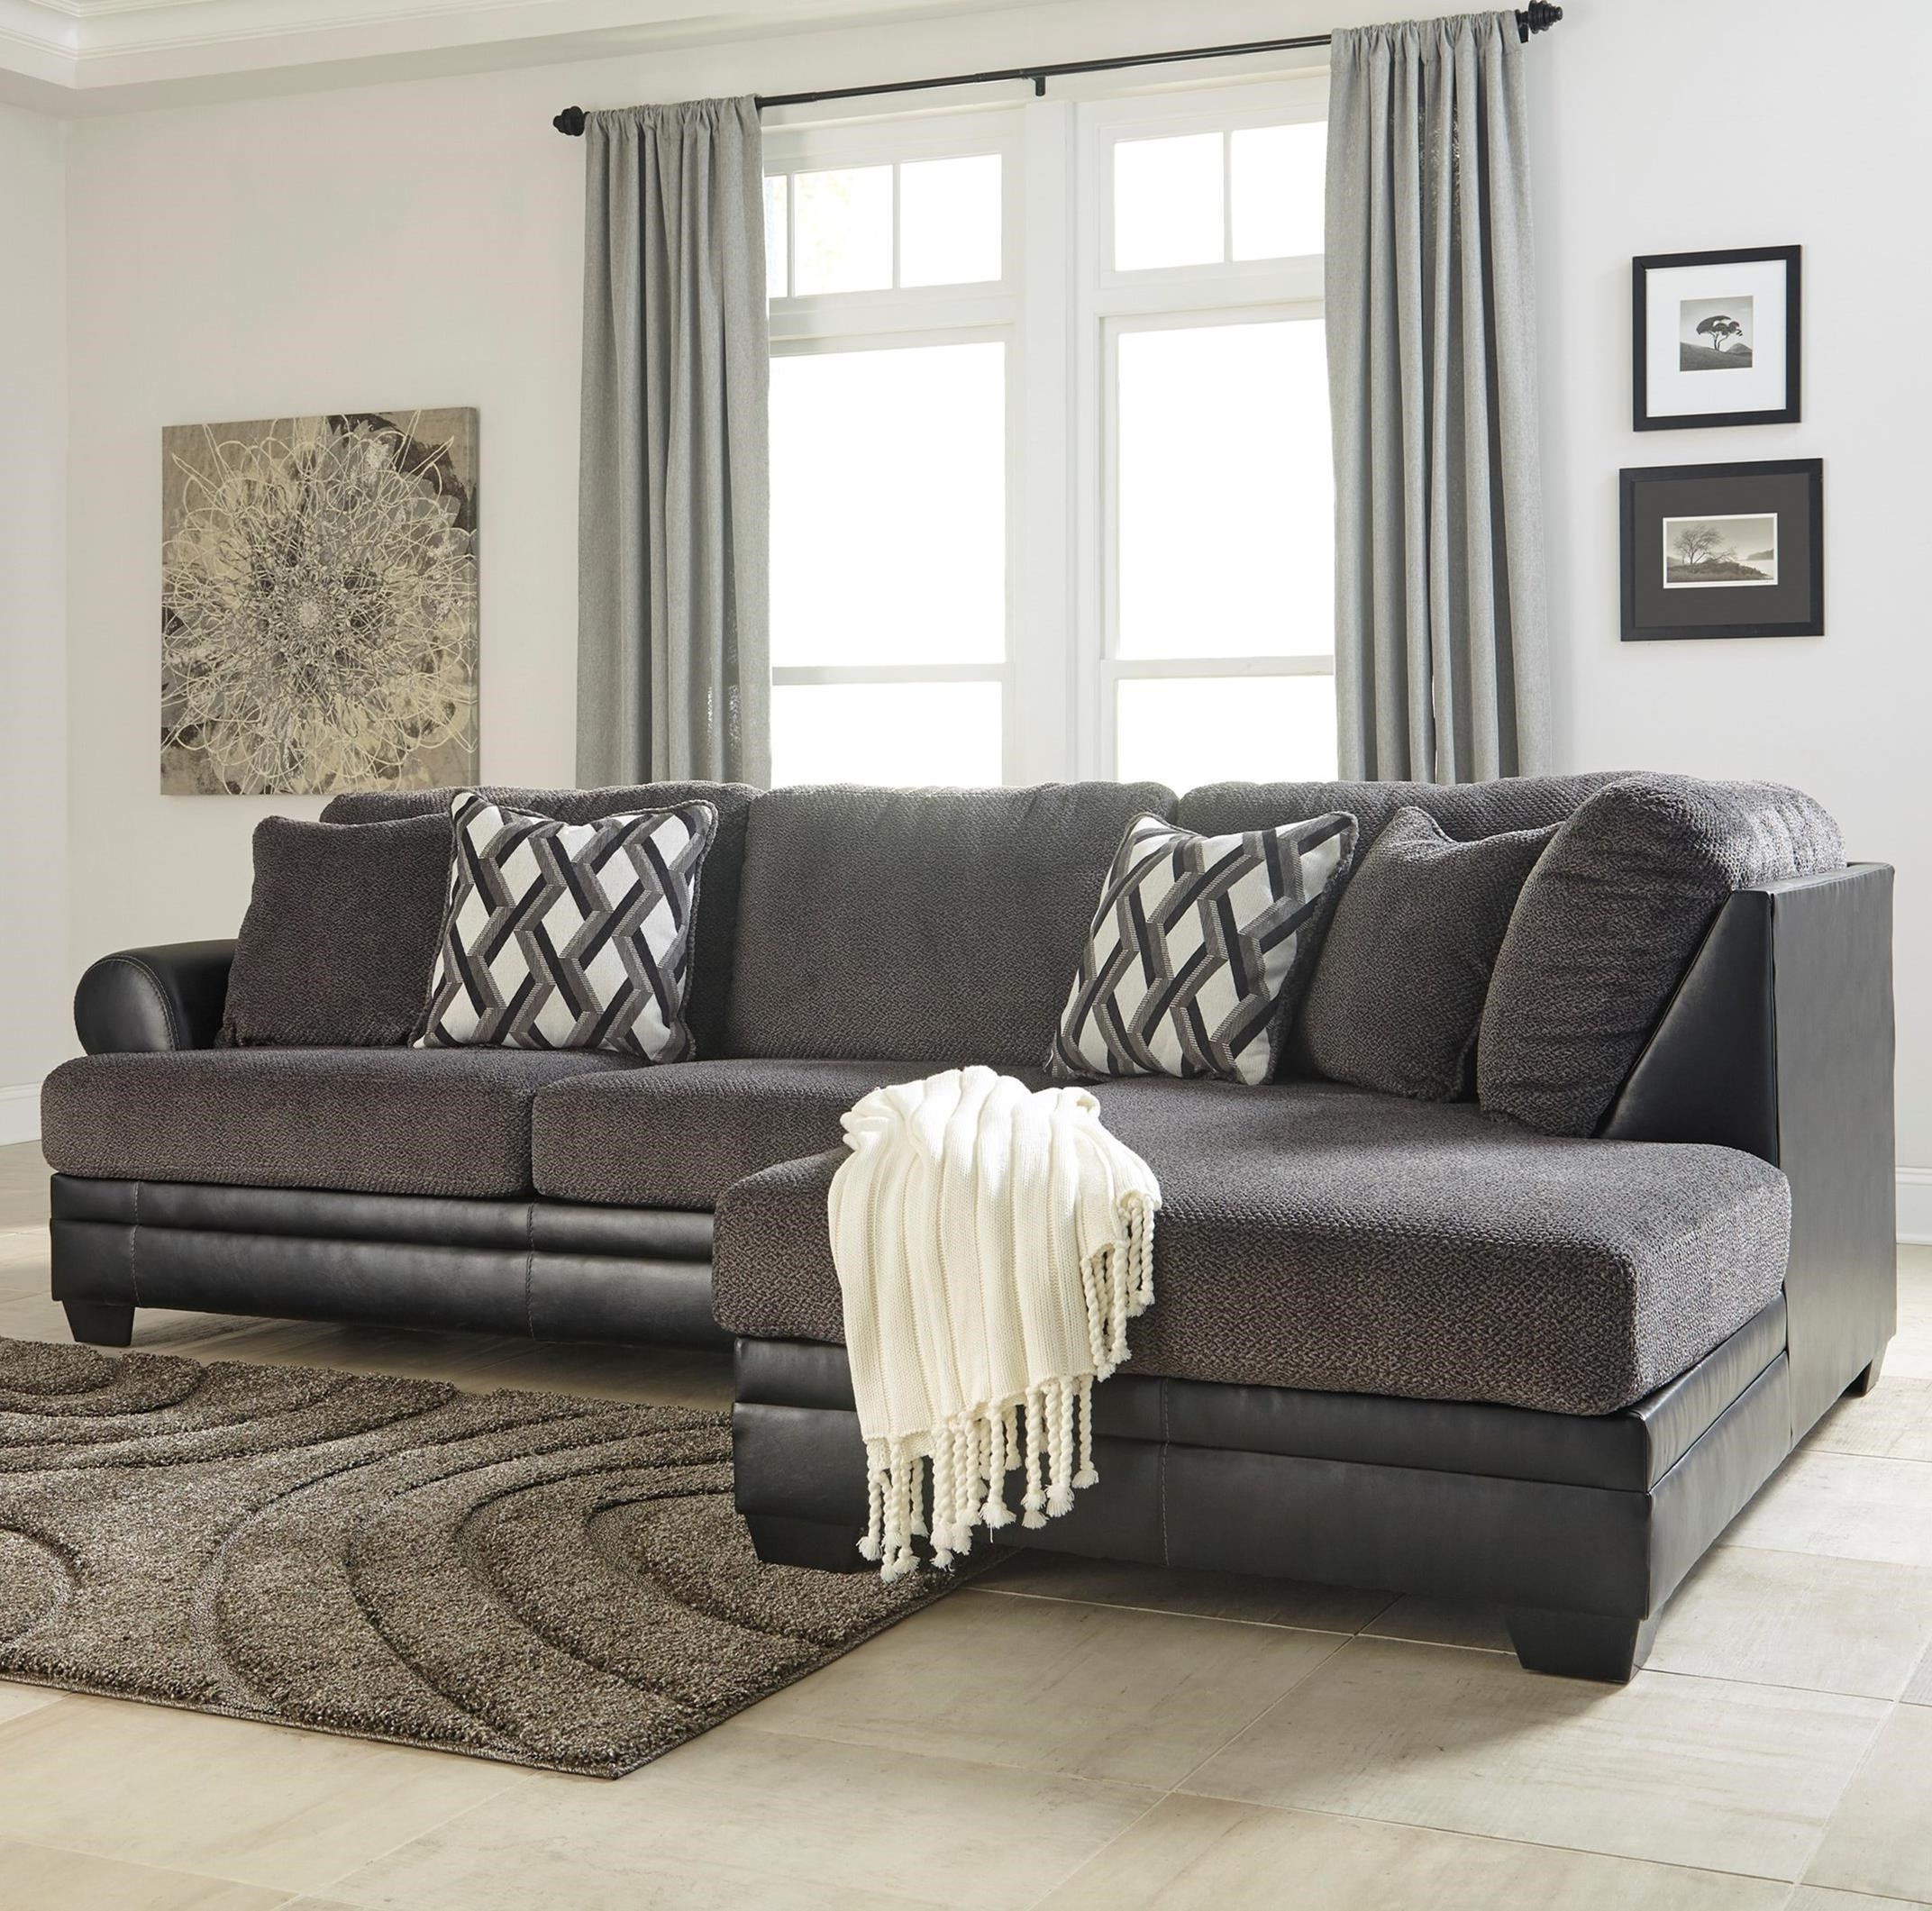 2018 Benchcraft Kumasi 2 Piece Fabric/faux Leather Sectional With Left For 2 Piece Sectionals With Chaise (View 8 of 15)